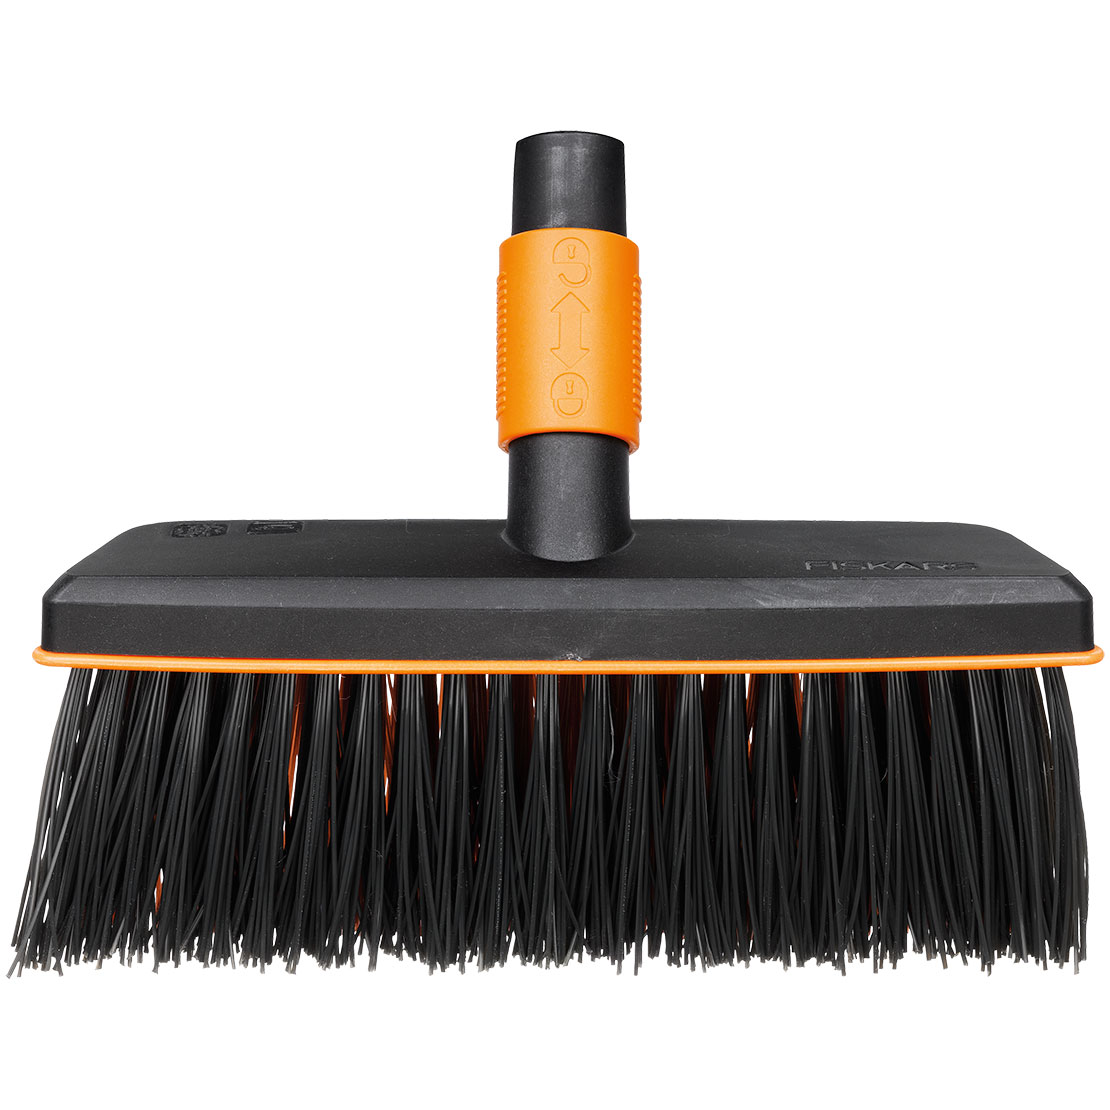 1001417-QuikFit-Yard-Broom-Front.jpg